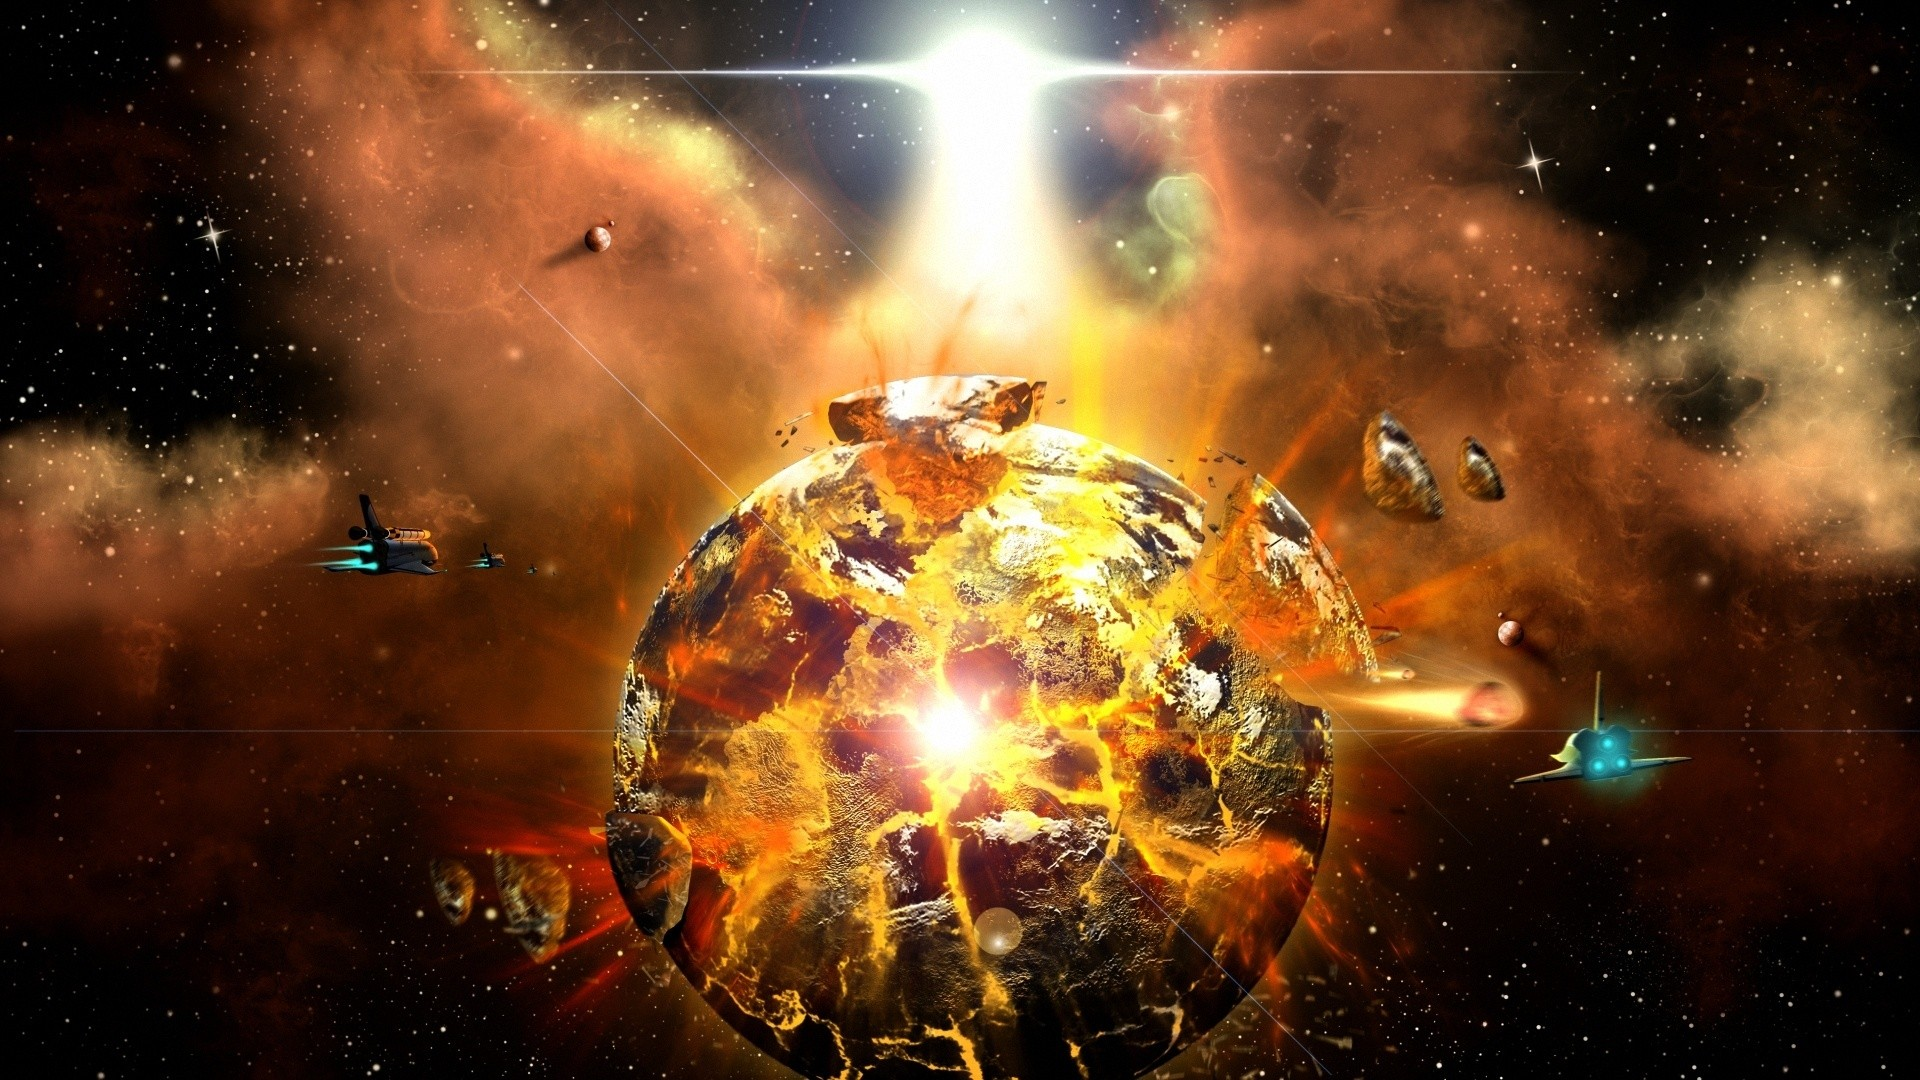 Outer space science fiction wallpaper | 1920x1080 | 224523 ...